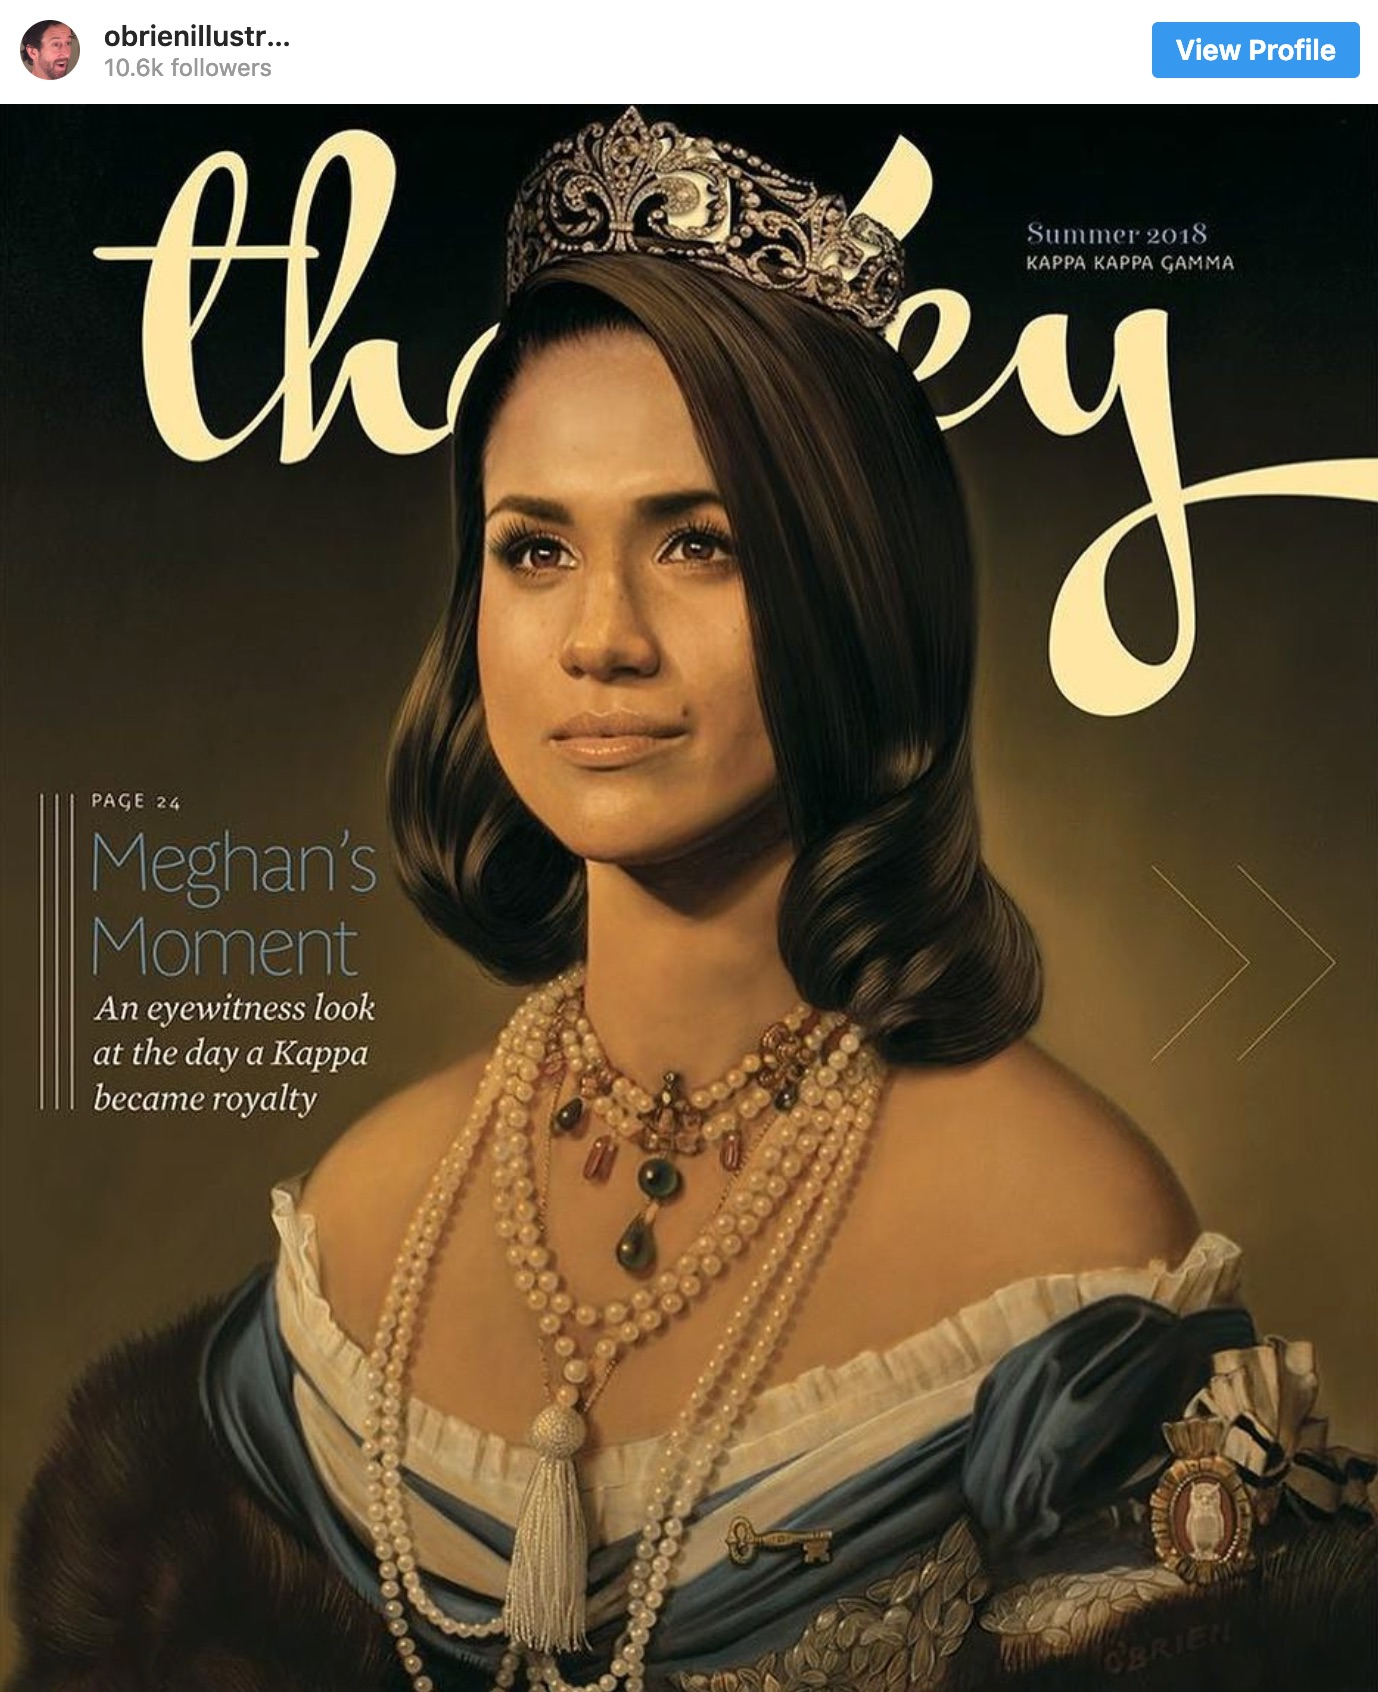 Who_Painted_the_Royal_Portrait_of_Meghan_Markle_Featured_by_Beyoncé